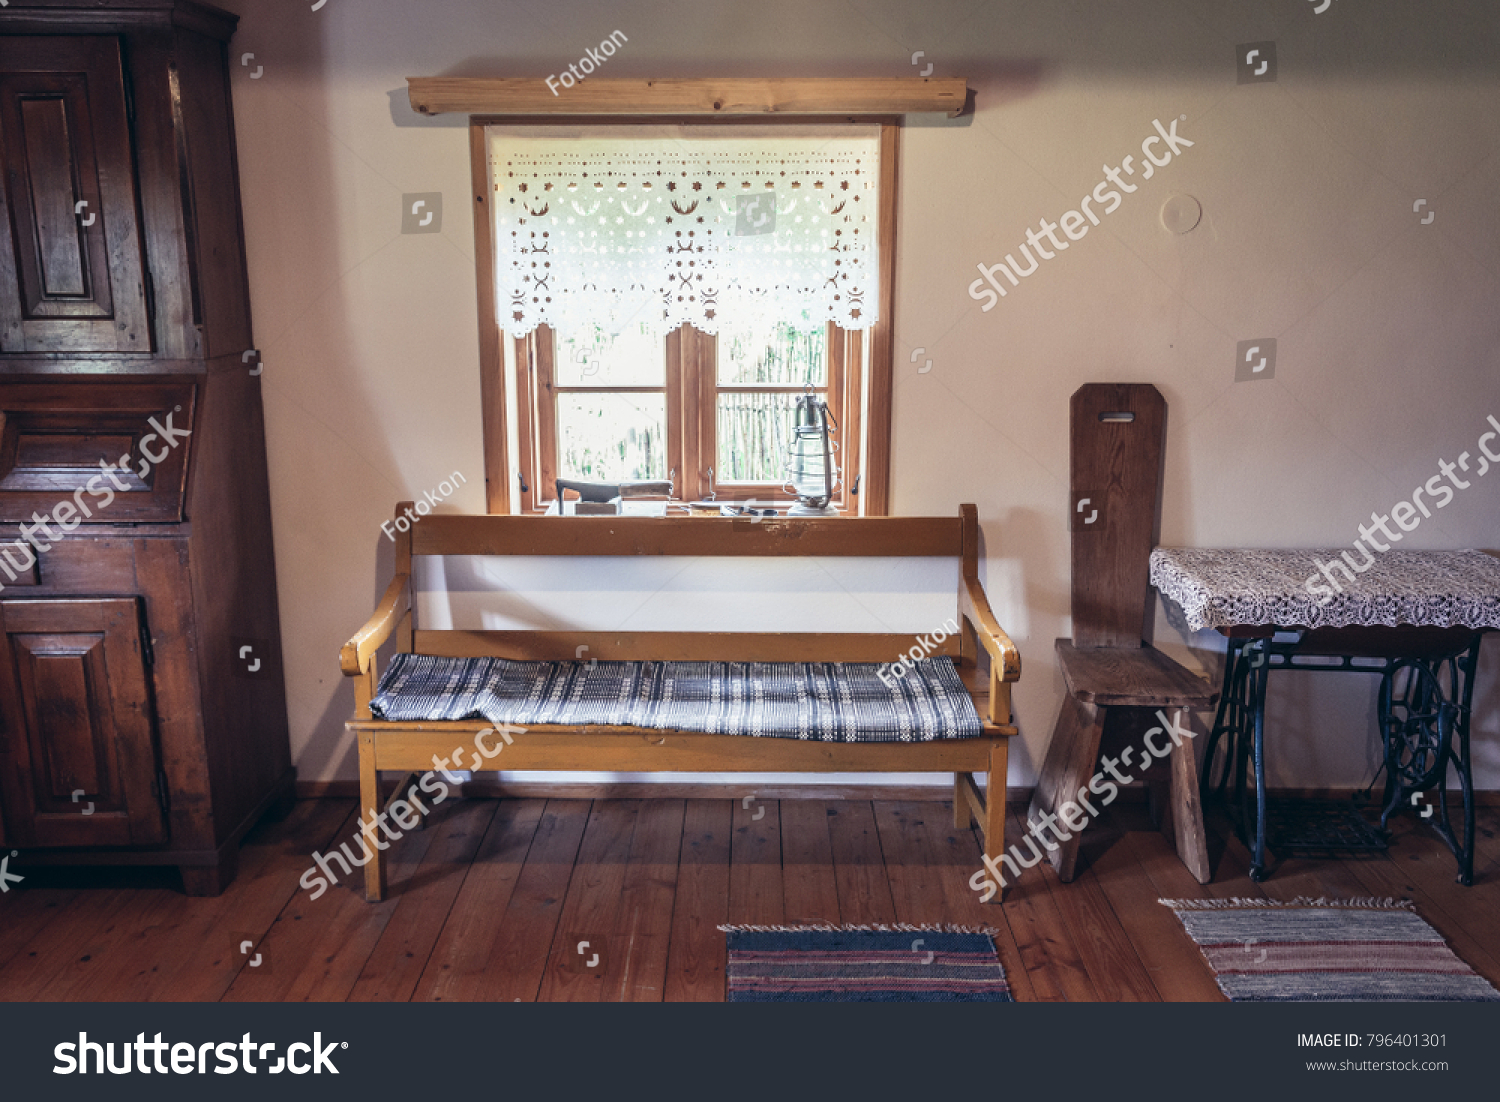 Wooden Furnitures Traditional Masurian House Poland Stock Photo (Royalty  Free) 796401301   Shutterstock